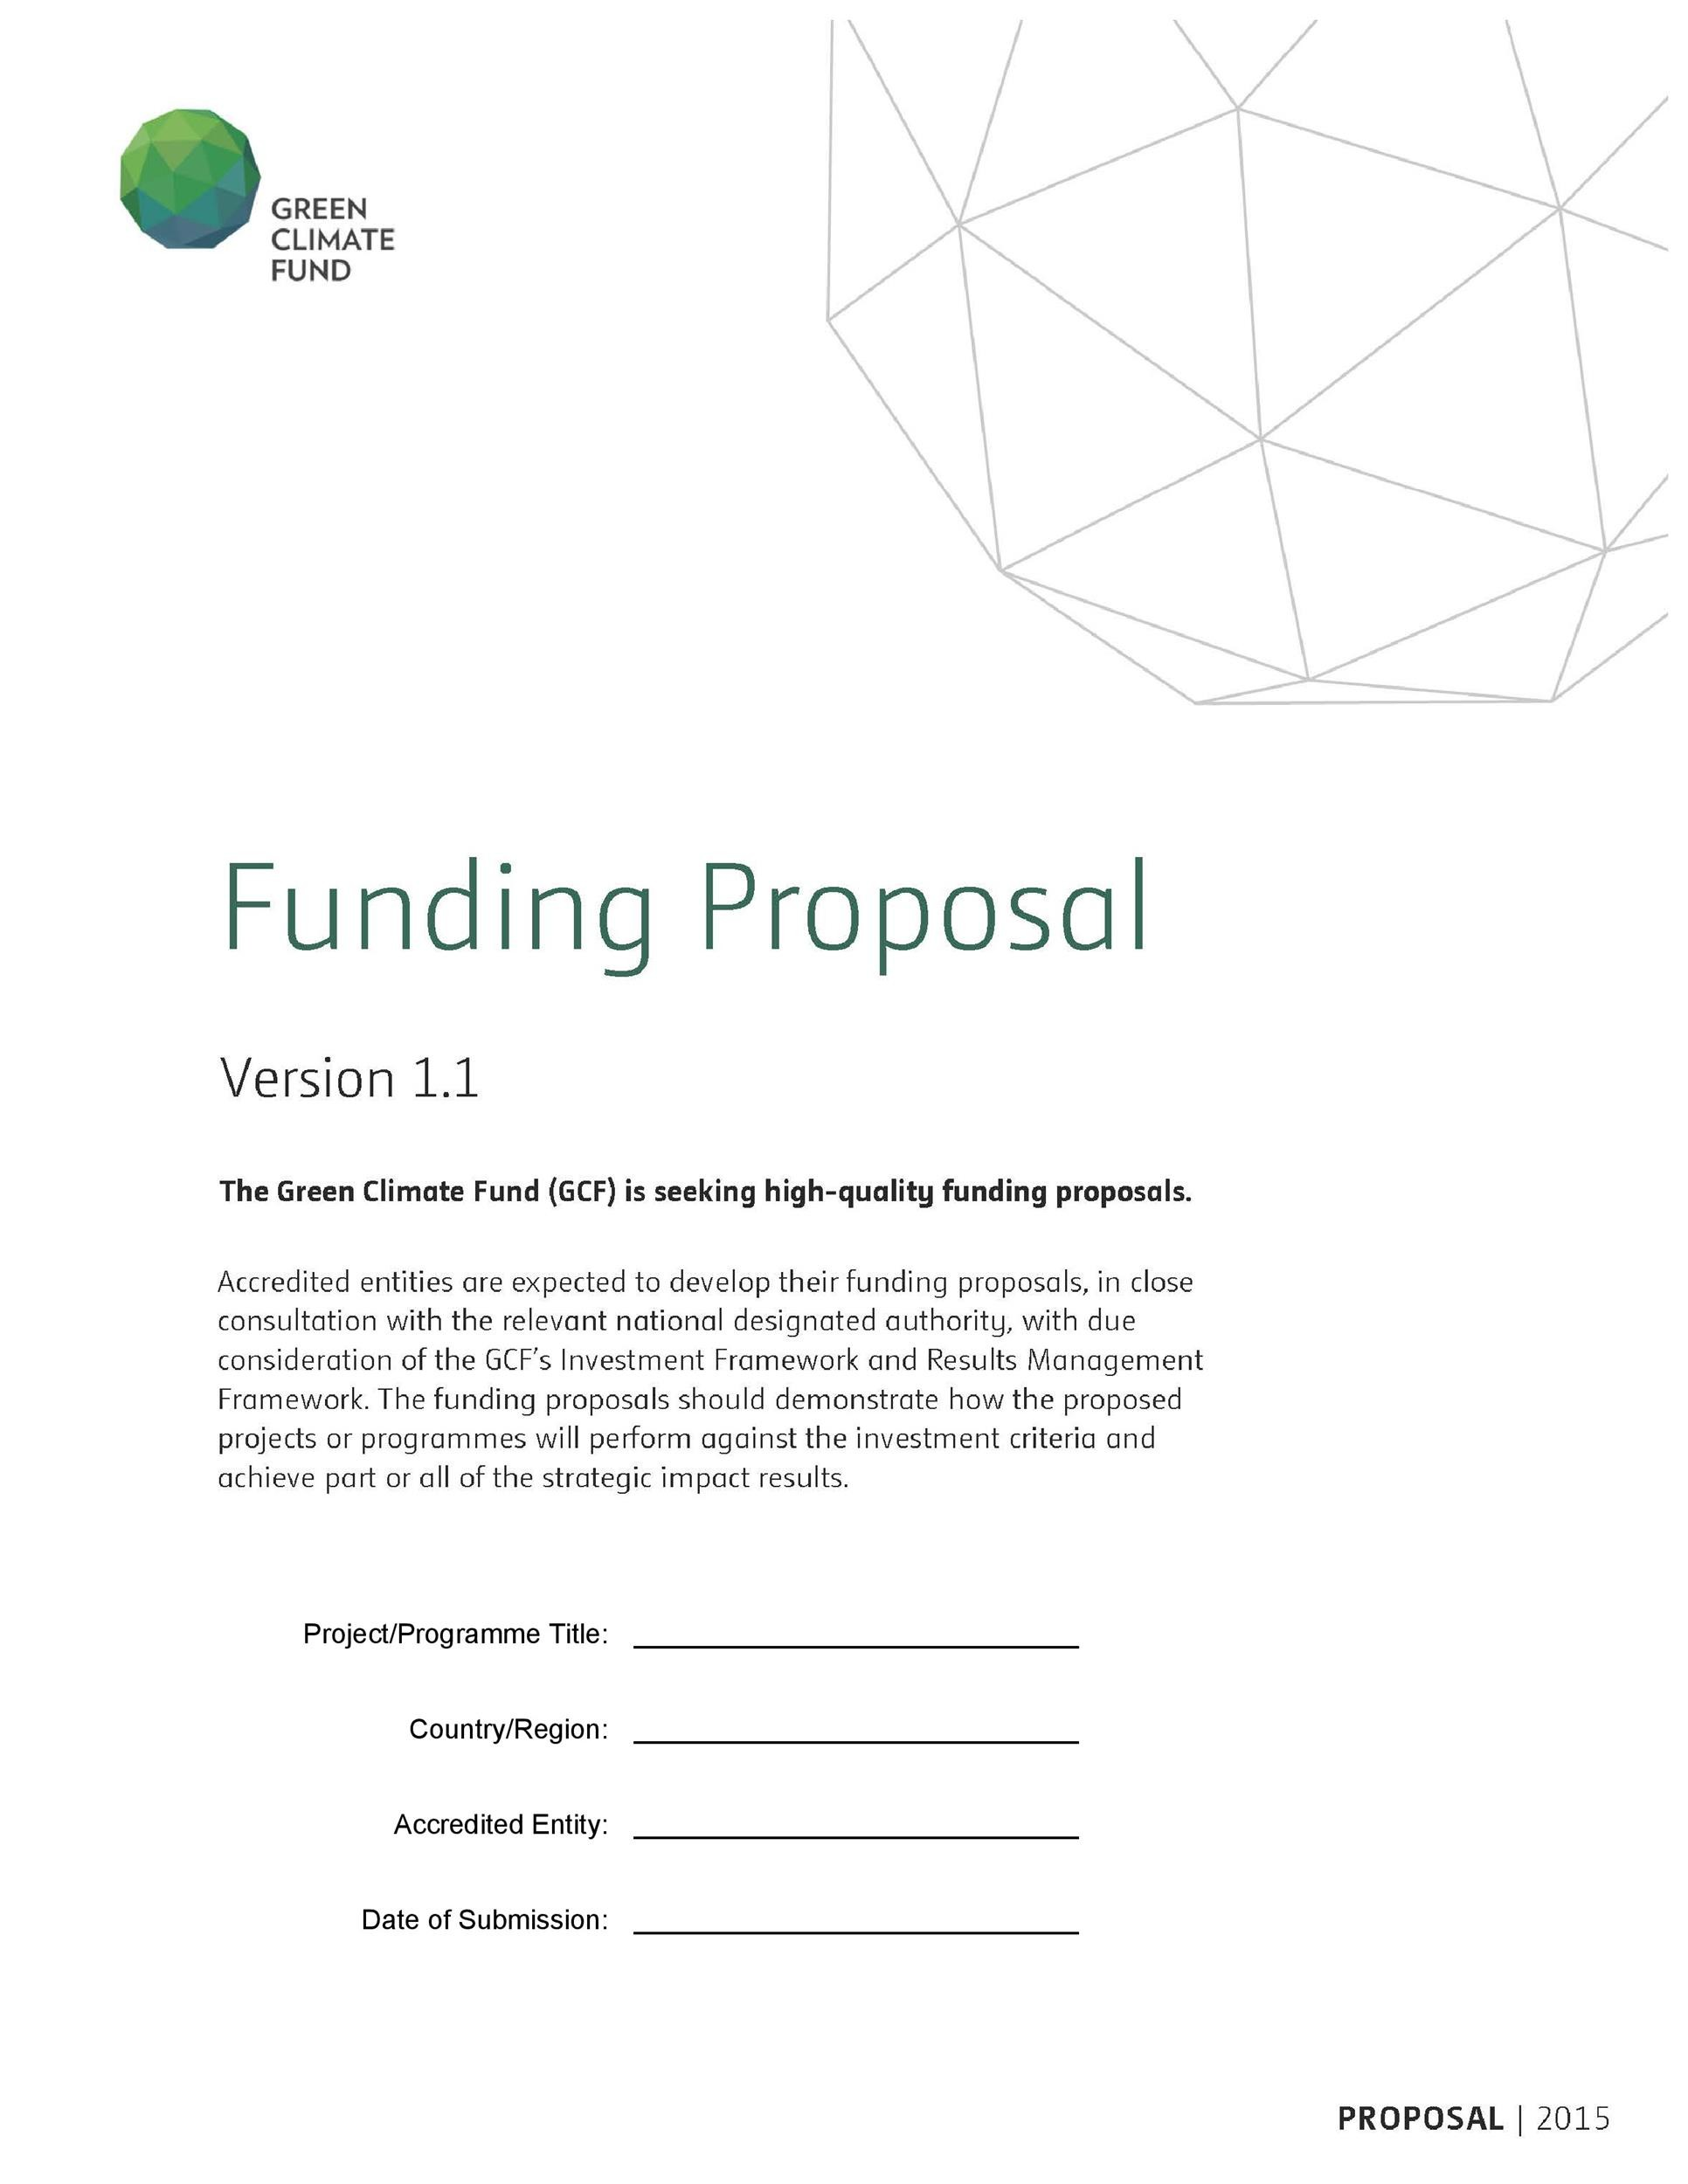 Project proposal format sample pdf